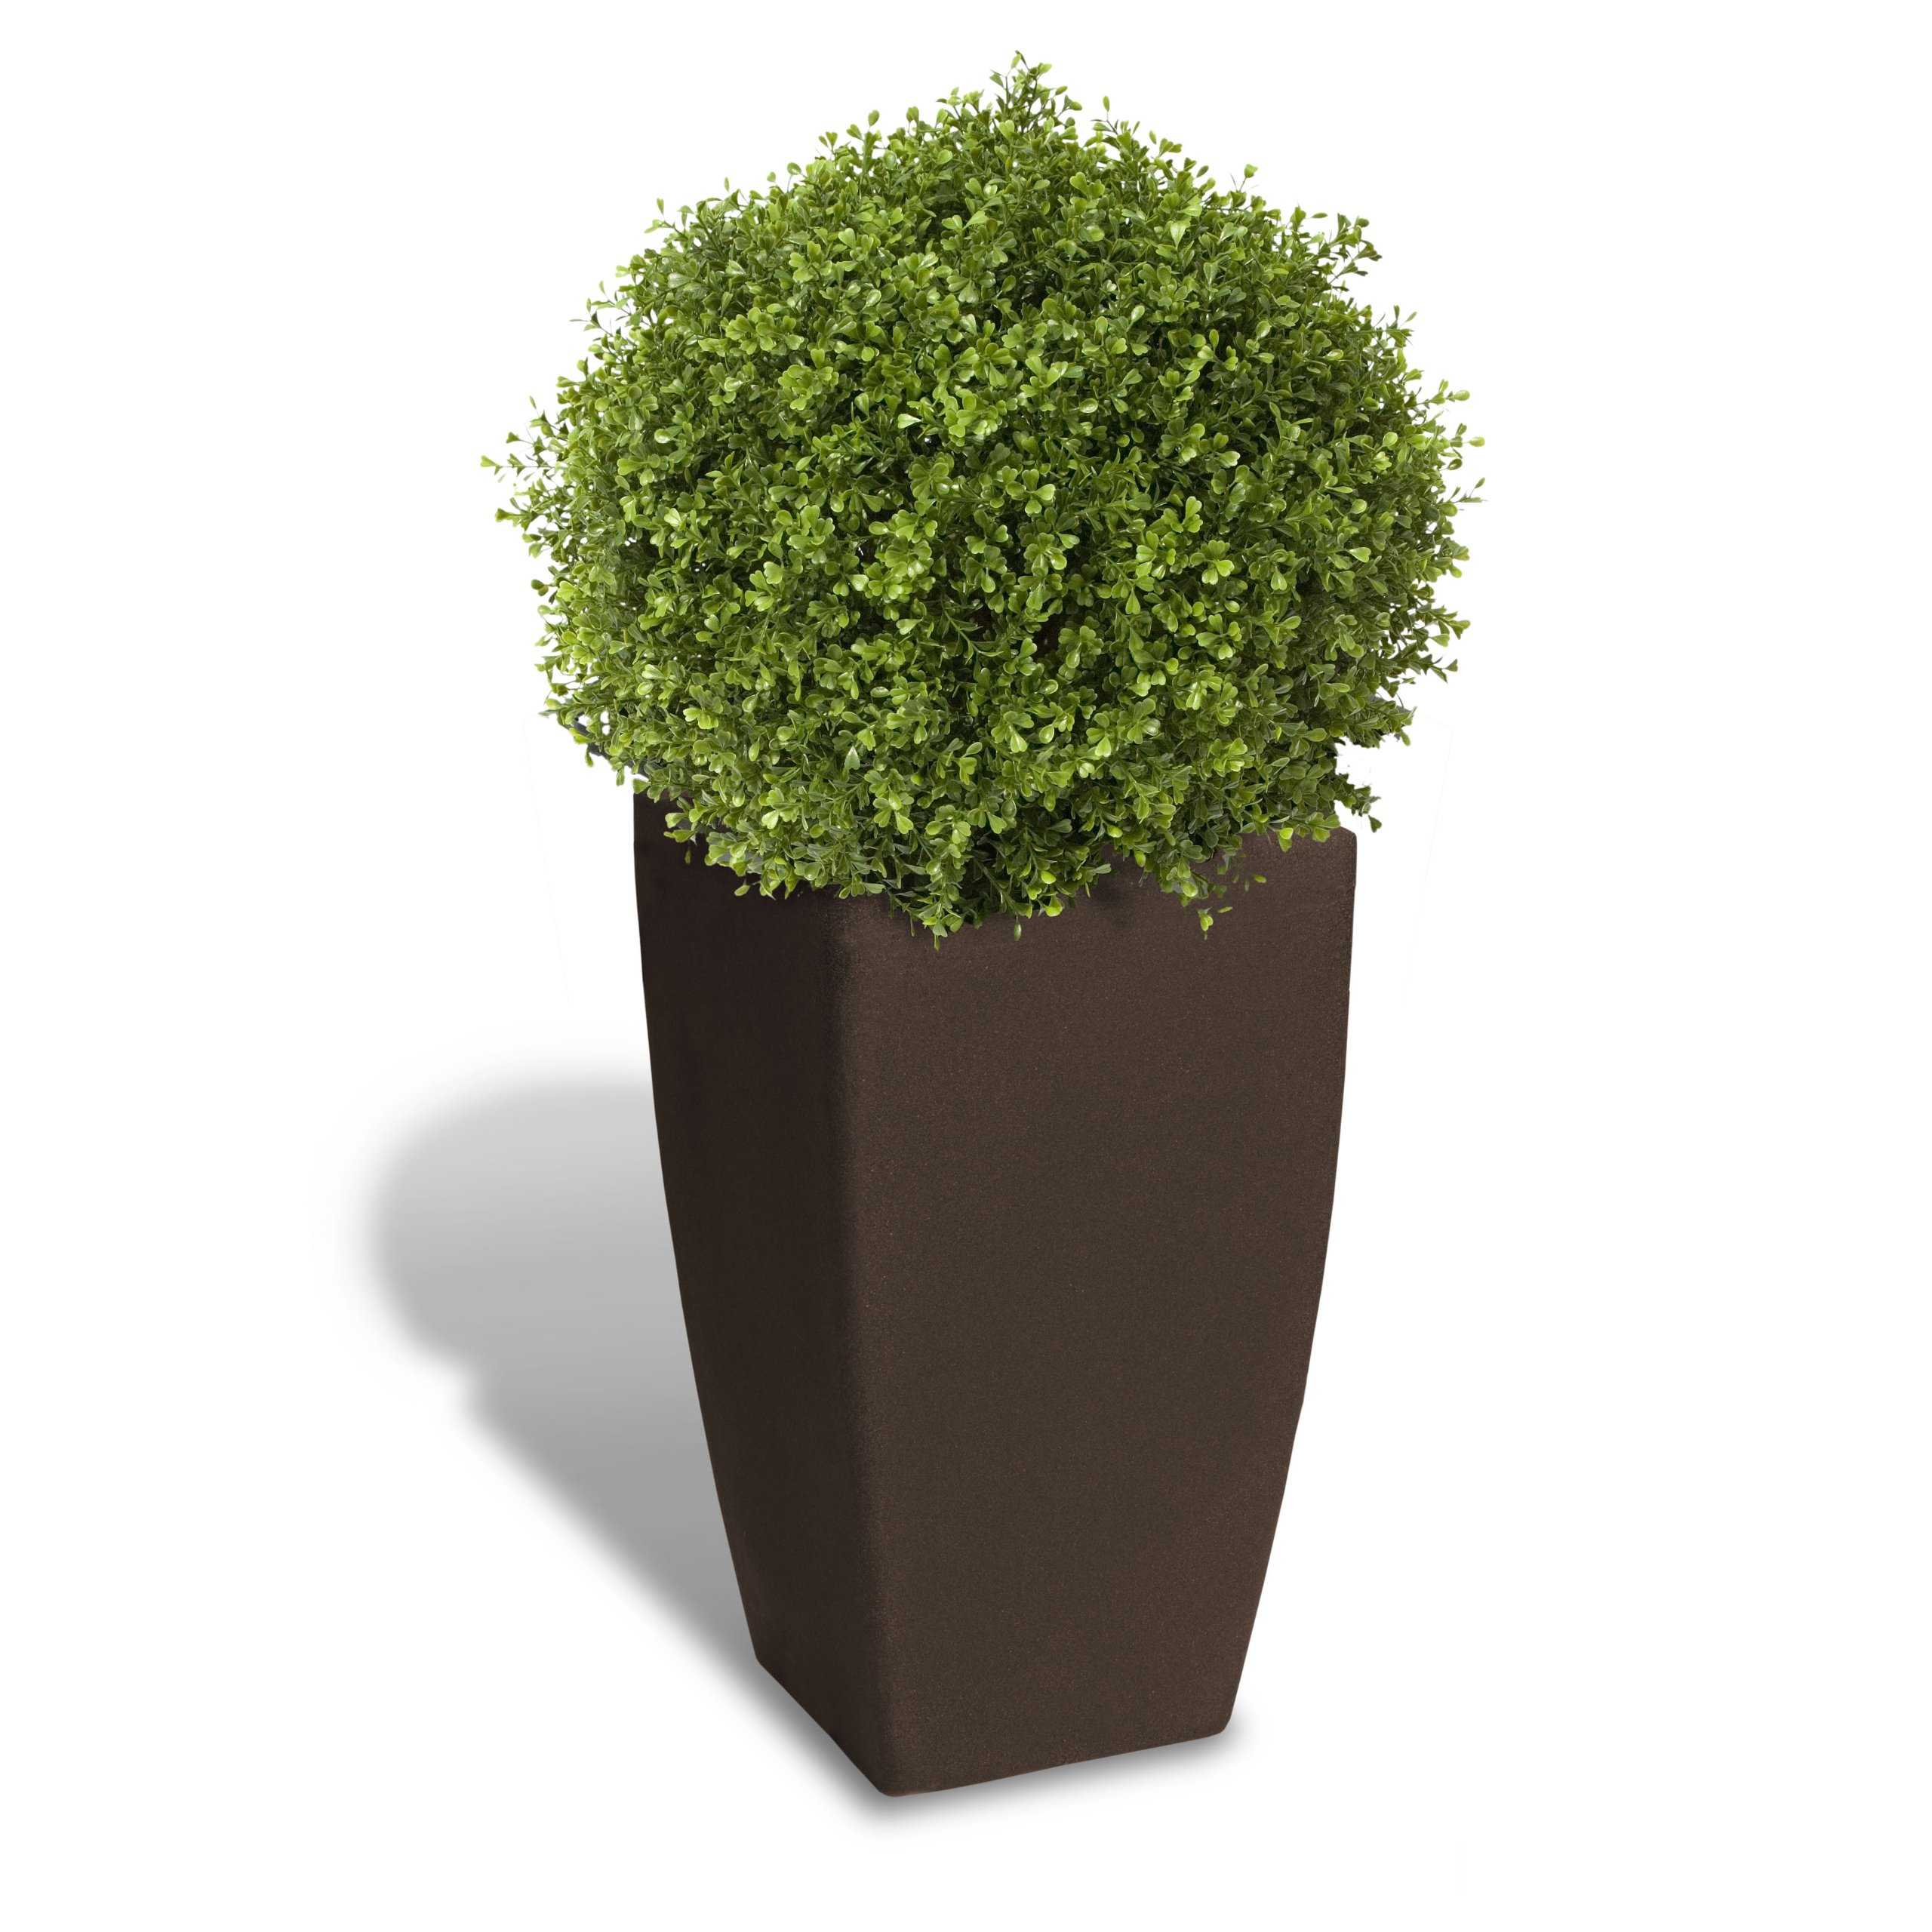 Algreen Products Madison Planter, Large, 20'' L x 20'' W x 34.5'' H, Brownstone